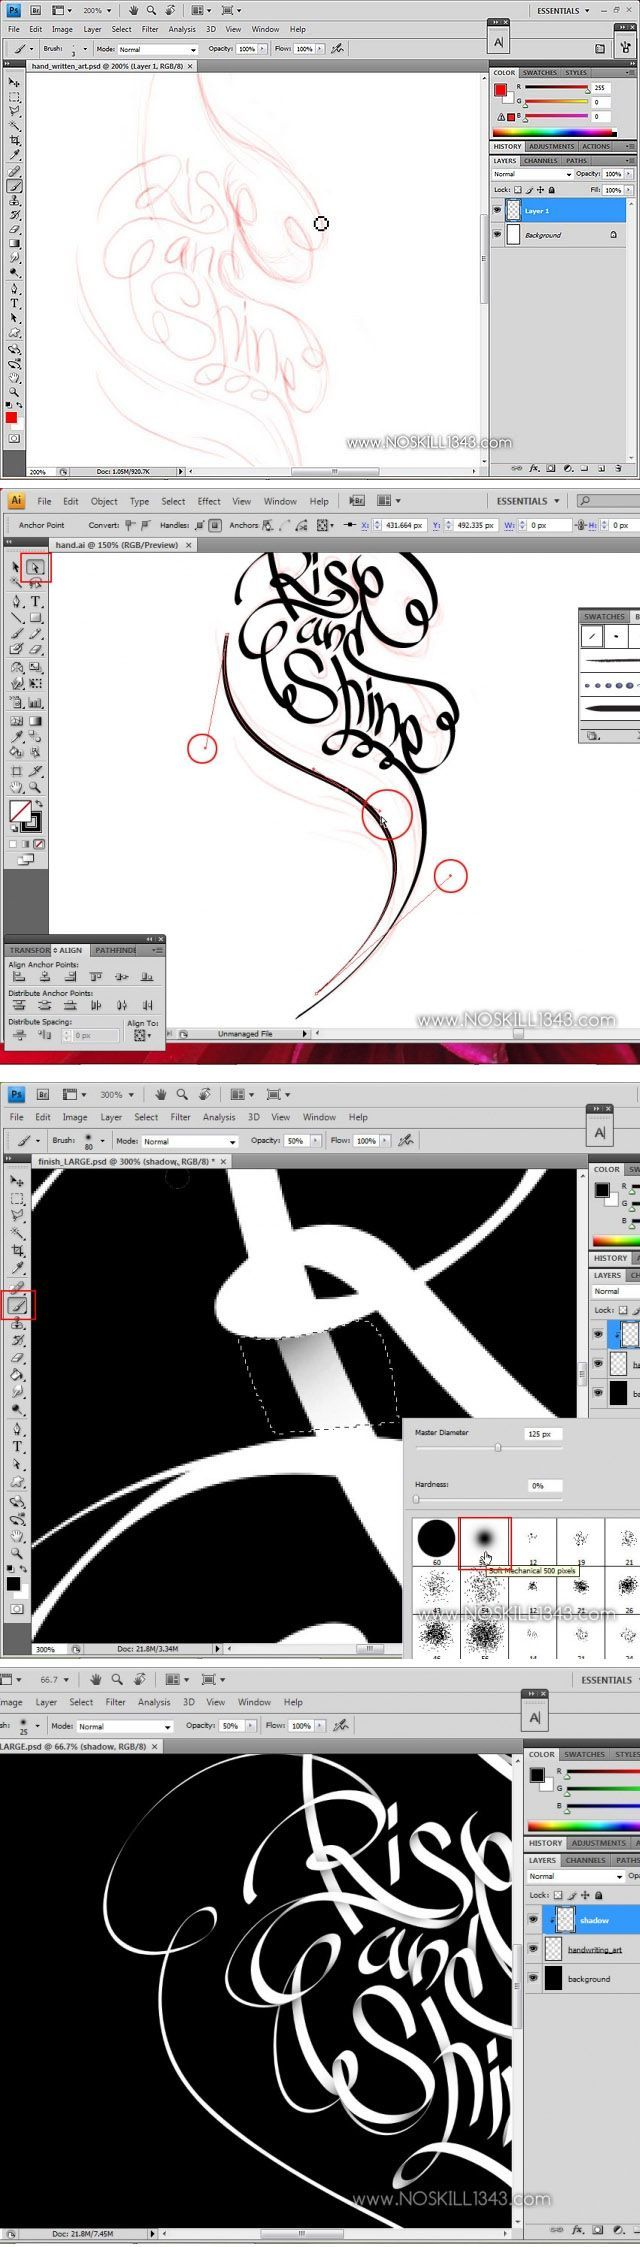 Calligraphy with Photoshop and Illustrator    http://www.webdesign.org/vector-graphics/adobe-illustrator/calligraphy-with-photoshop-and-illustrator.20157.html